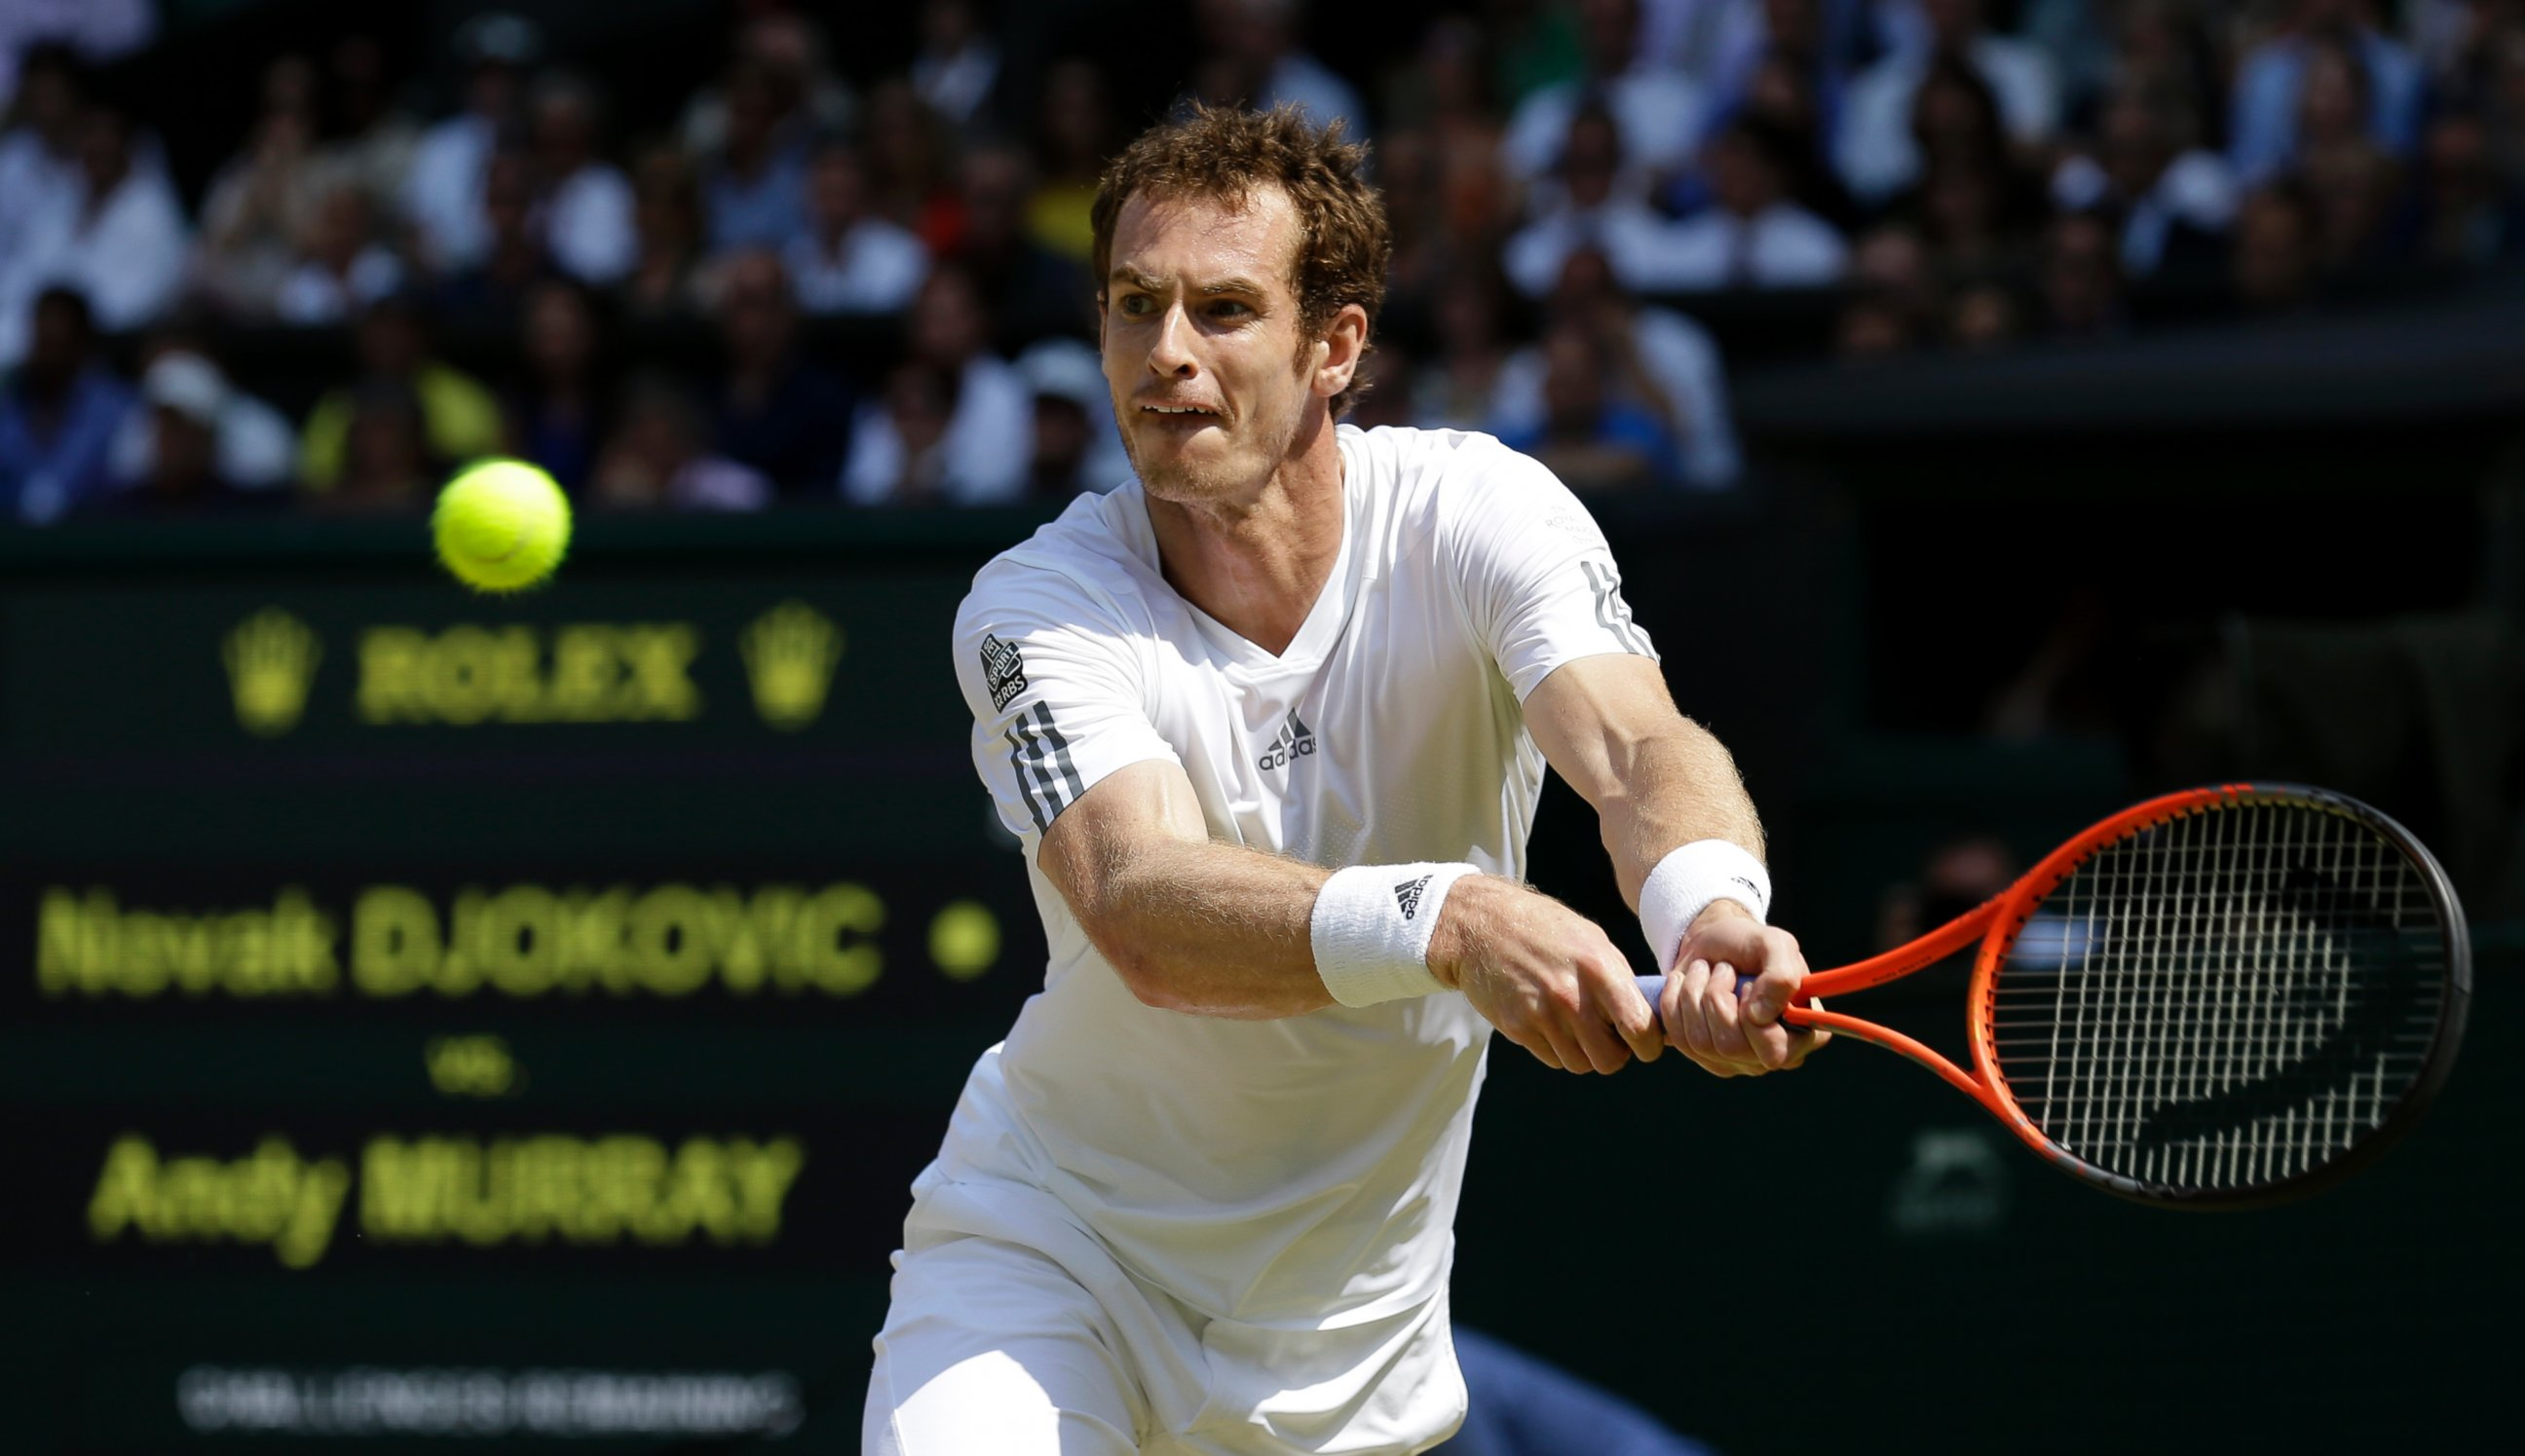 AP andy murray wimbledon jt 130707 2013 Wimbledon Champ Andy Murrays Lucky Number Seven